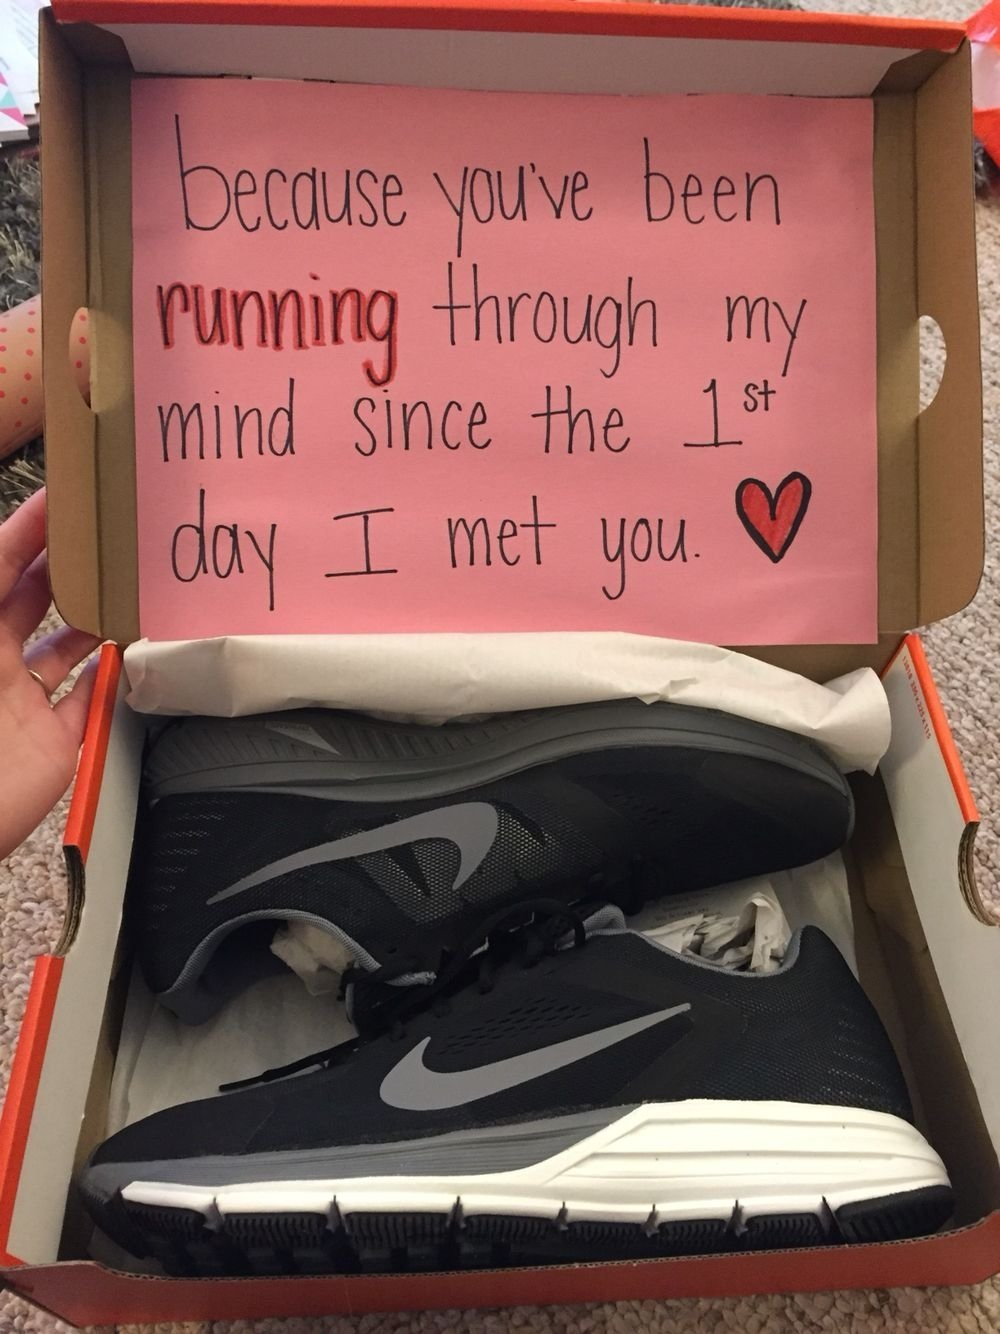 10 Attractive Bday Gift Ideas For Him gift ideas for him gift idea pinterest gift boyfriends and 17 2021